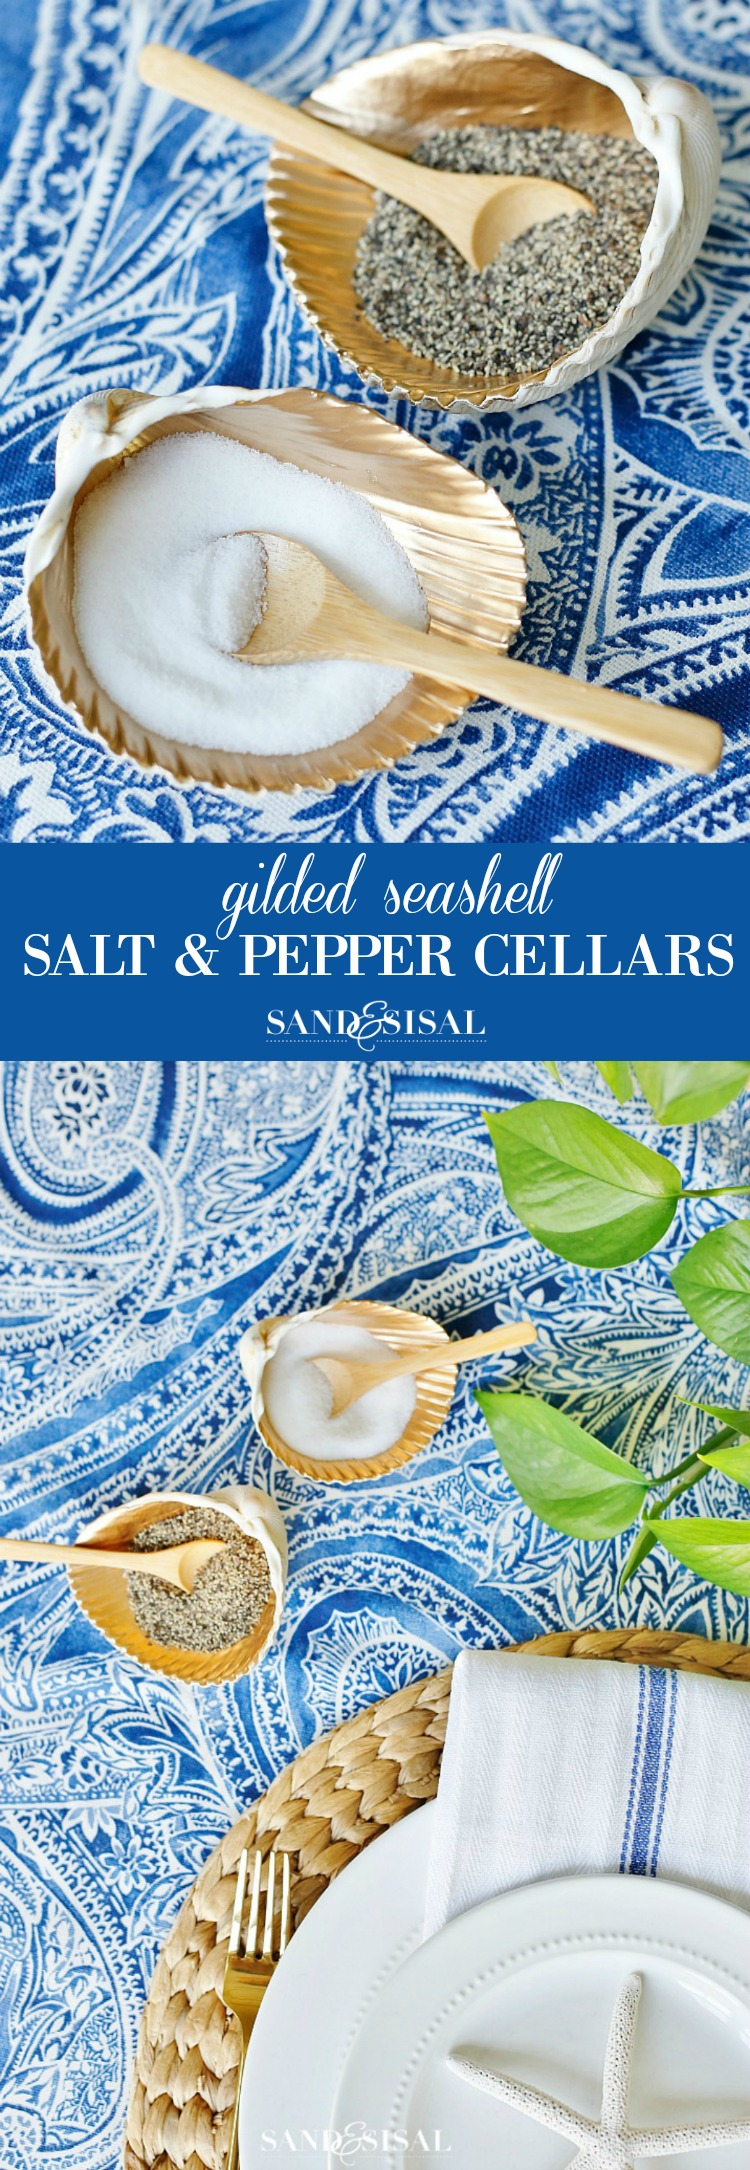 Gilded Seashell Salt and Pepper Cellars: Transform clam shells into gorgeous Shell Salt Cellars. This easy coastal craft will elevate your summer entertaining and diningroom table.